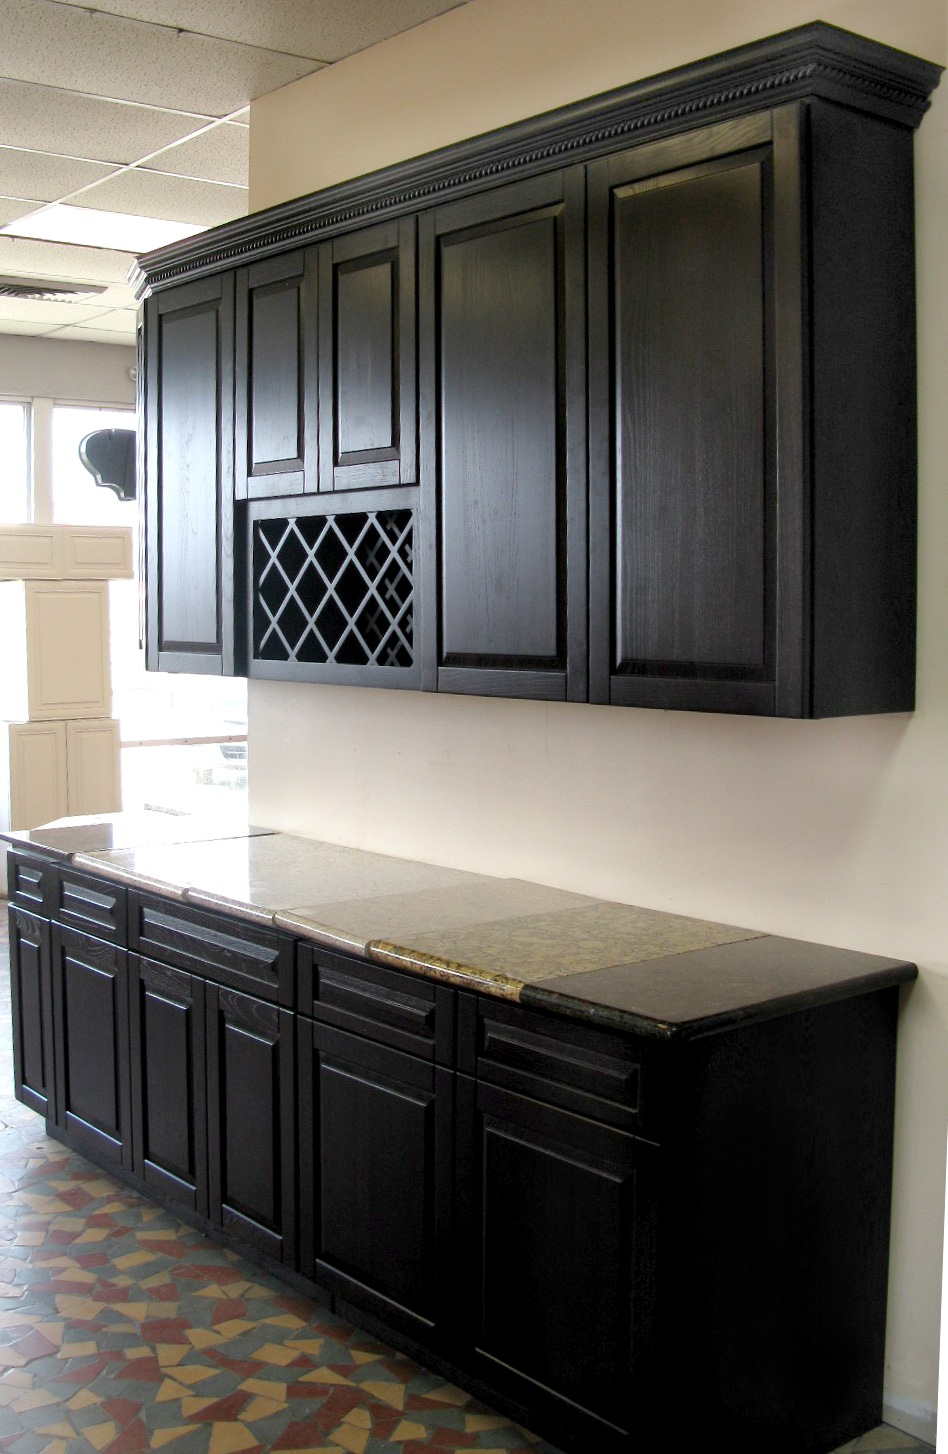 Cabinets for kitchen photos black kitchen cabinets Black kitchen cabinets ideas